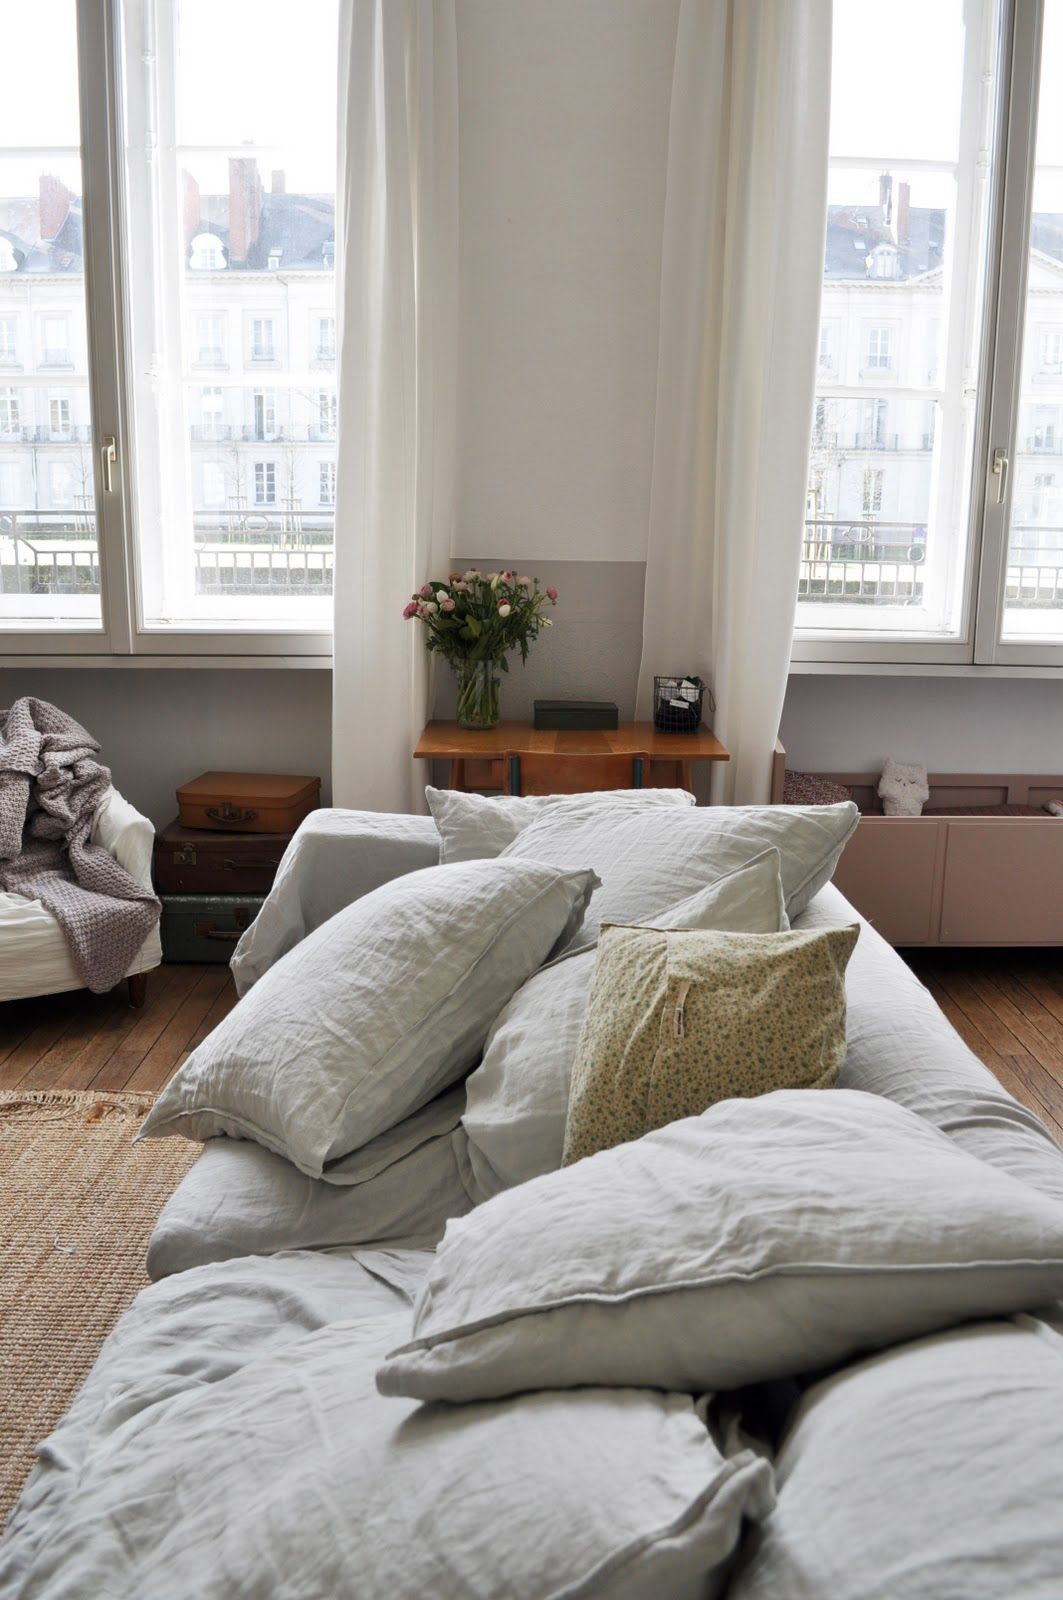 I Want A Nice Fluffy Couch Like This One The Kind That